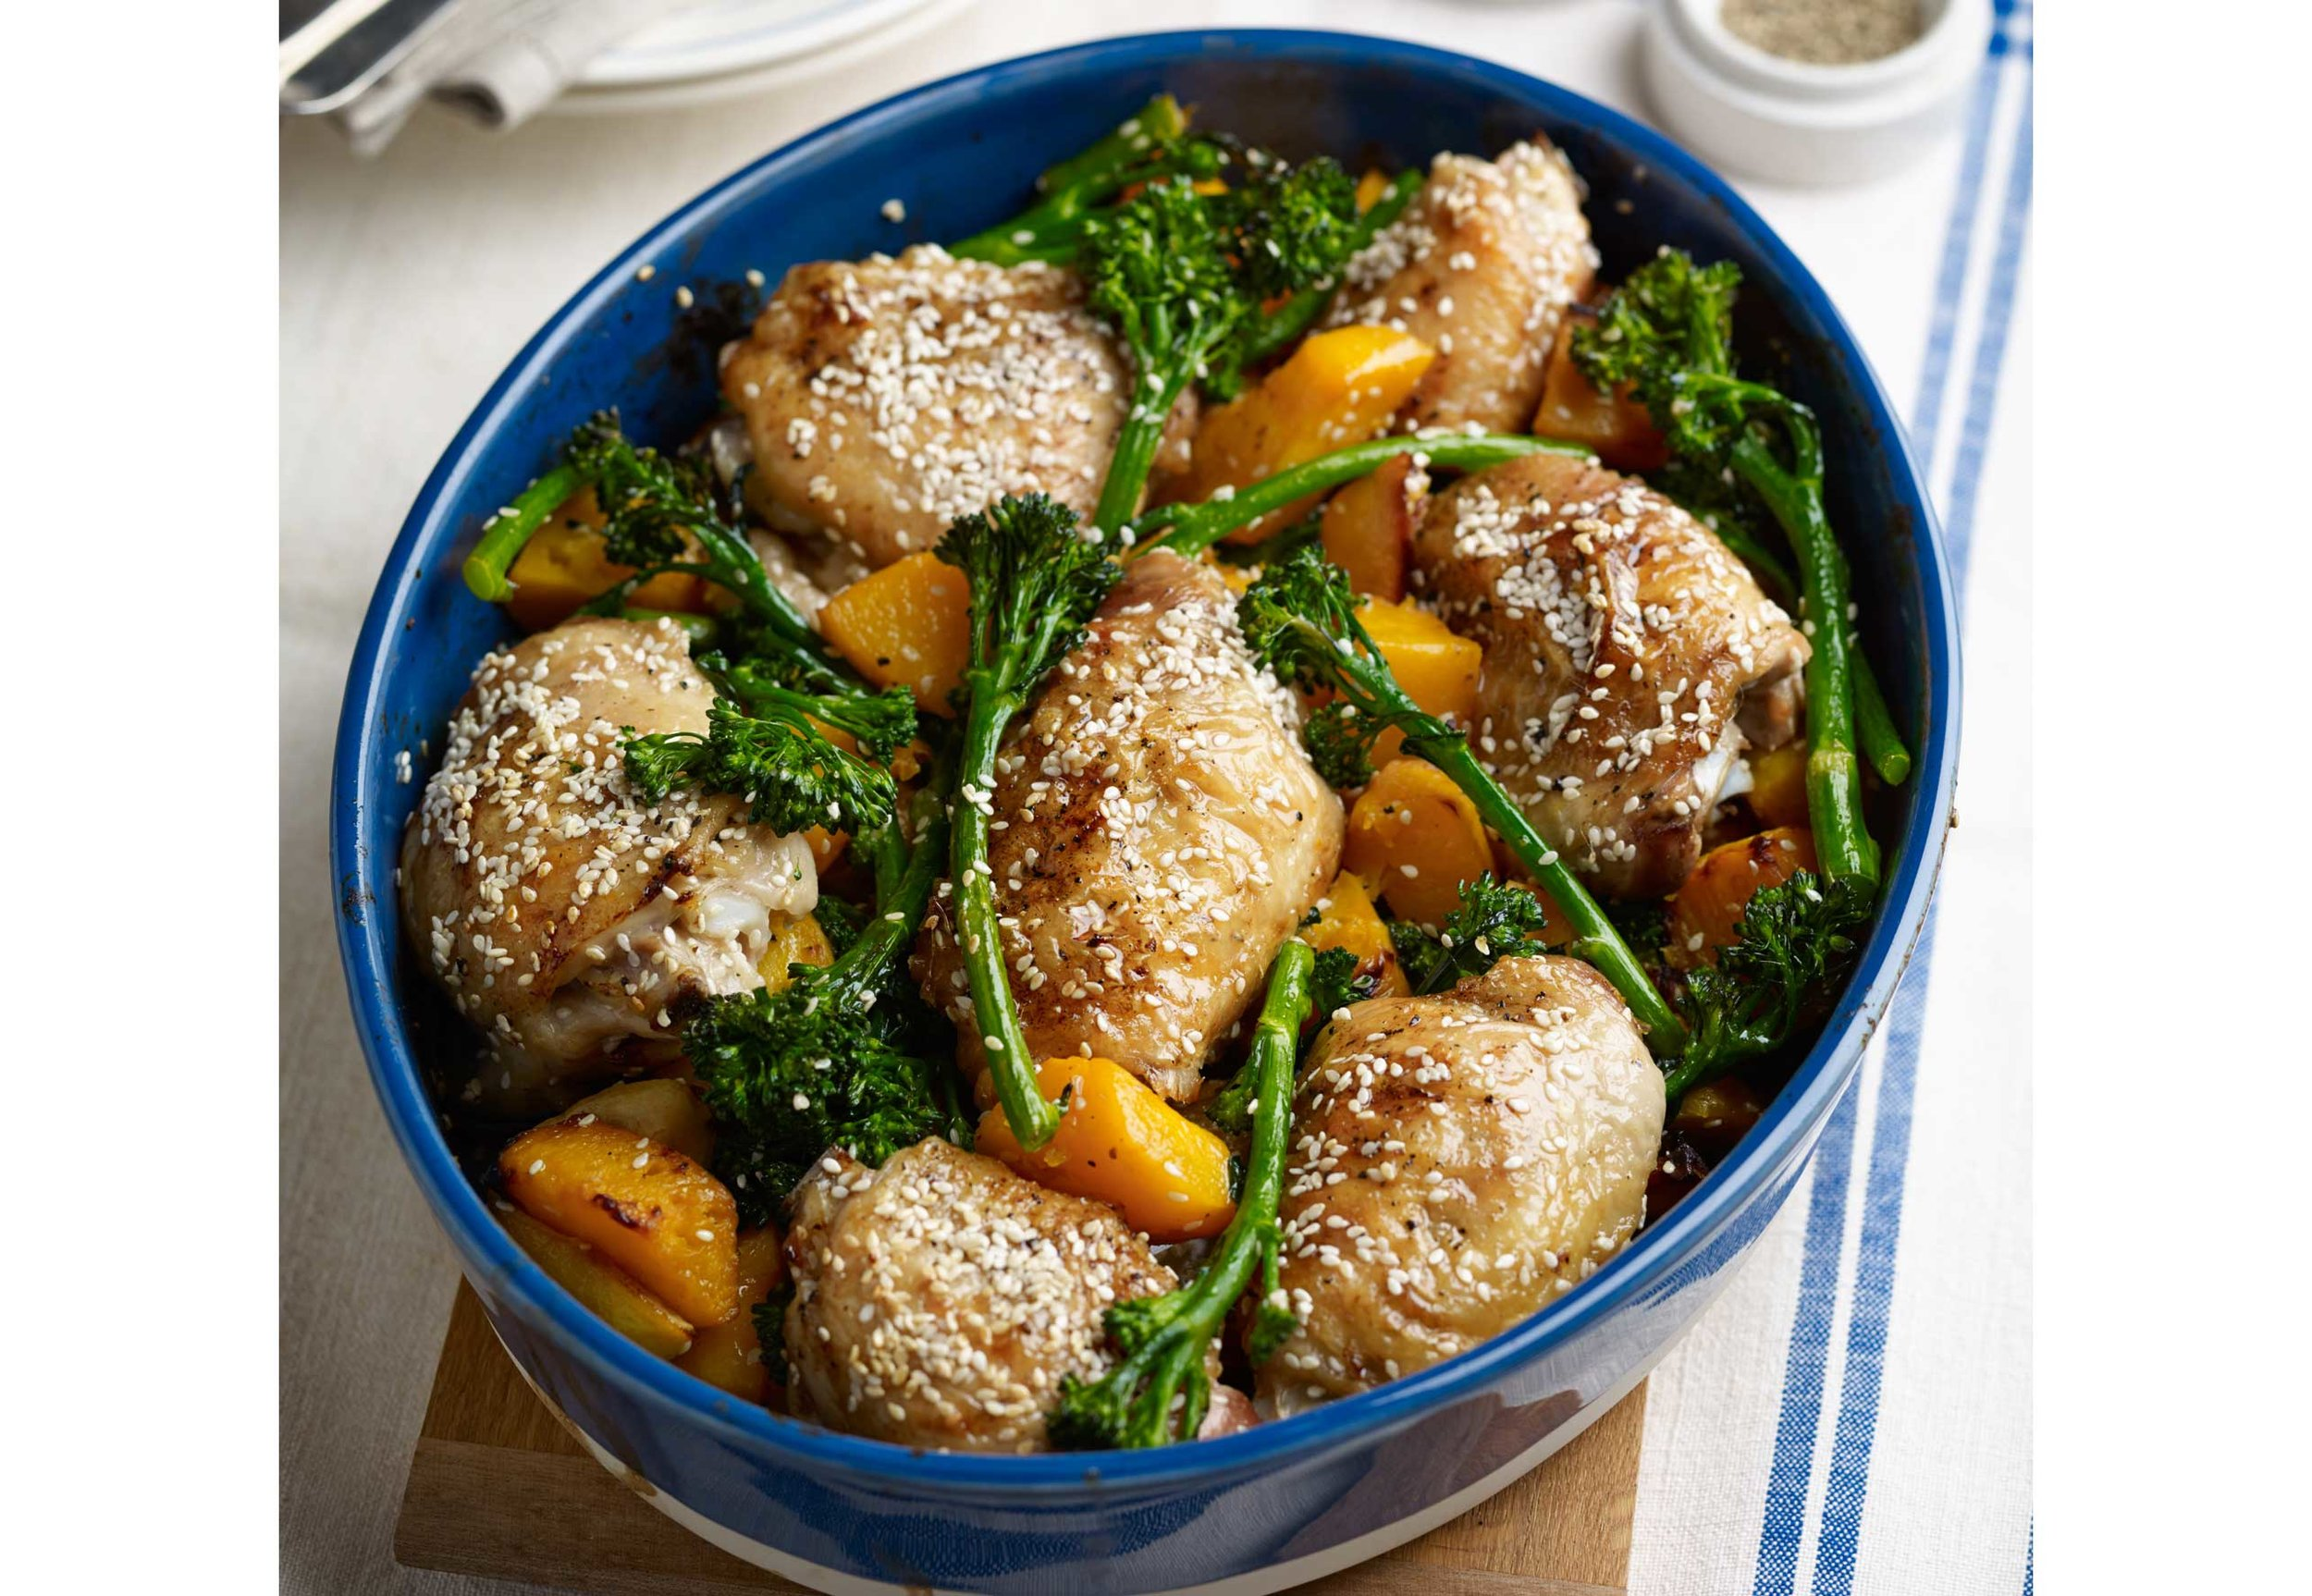 One-pan-roast-lunch-with-sesame-lemon-chicken,-Tenderstem-and-butternut-squash,-served-with-steamed-rice.jpg